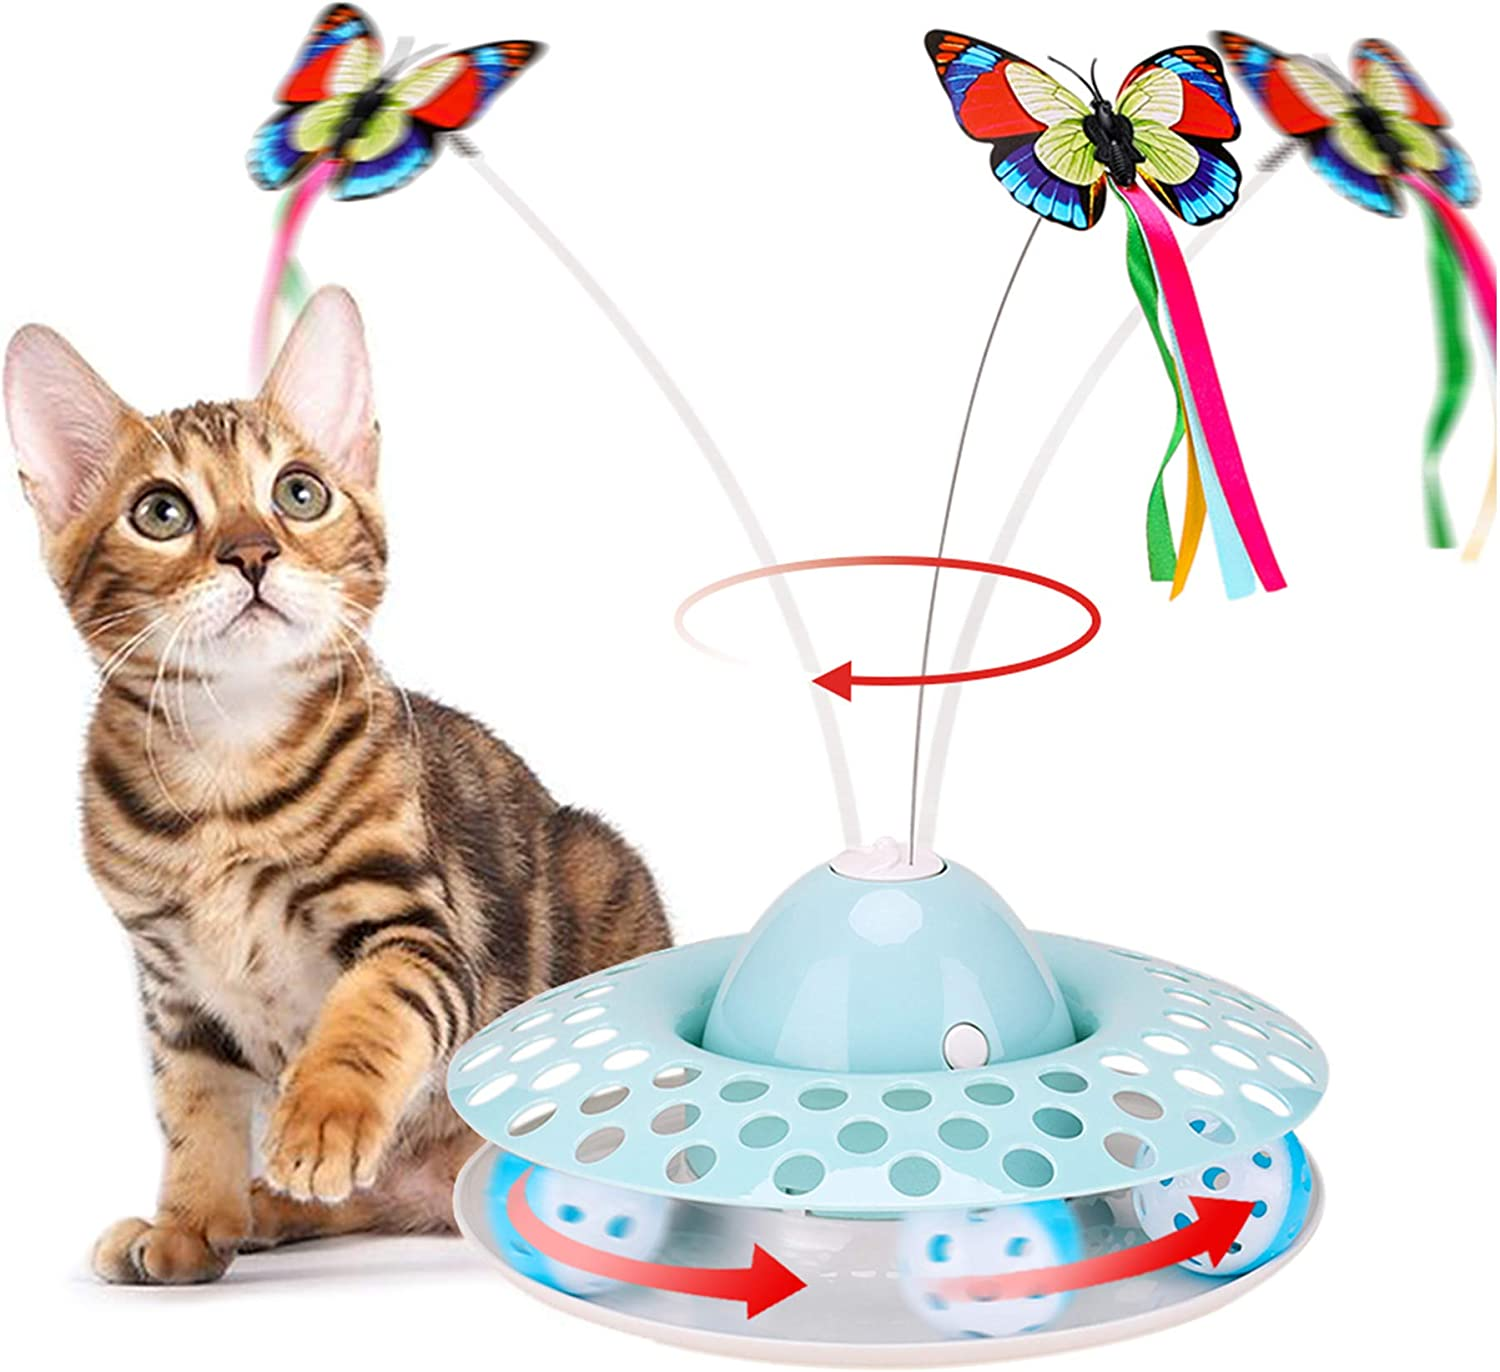 Interactive Cat Toys - Automatic Electric Rotating Butterfly & Ball Exercise Kitten Toy,Funny Cat Teaser Toys for Indoor Cats,2 Butterfly Replacements